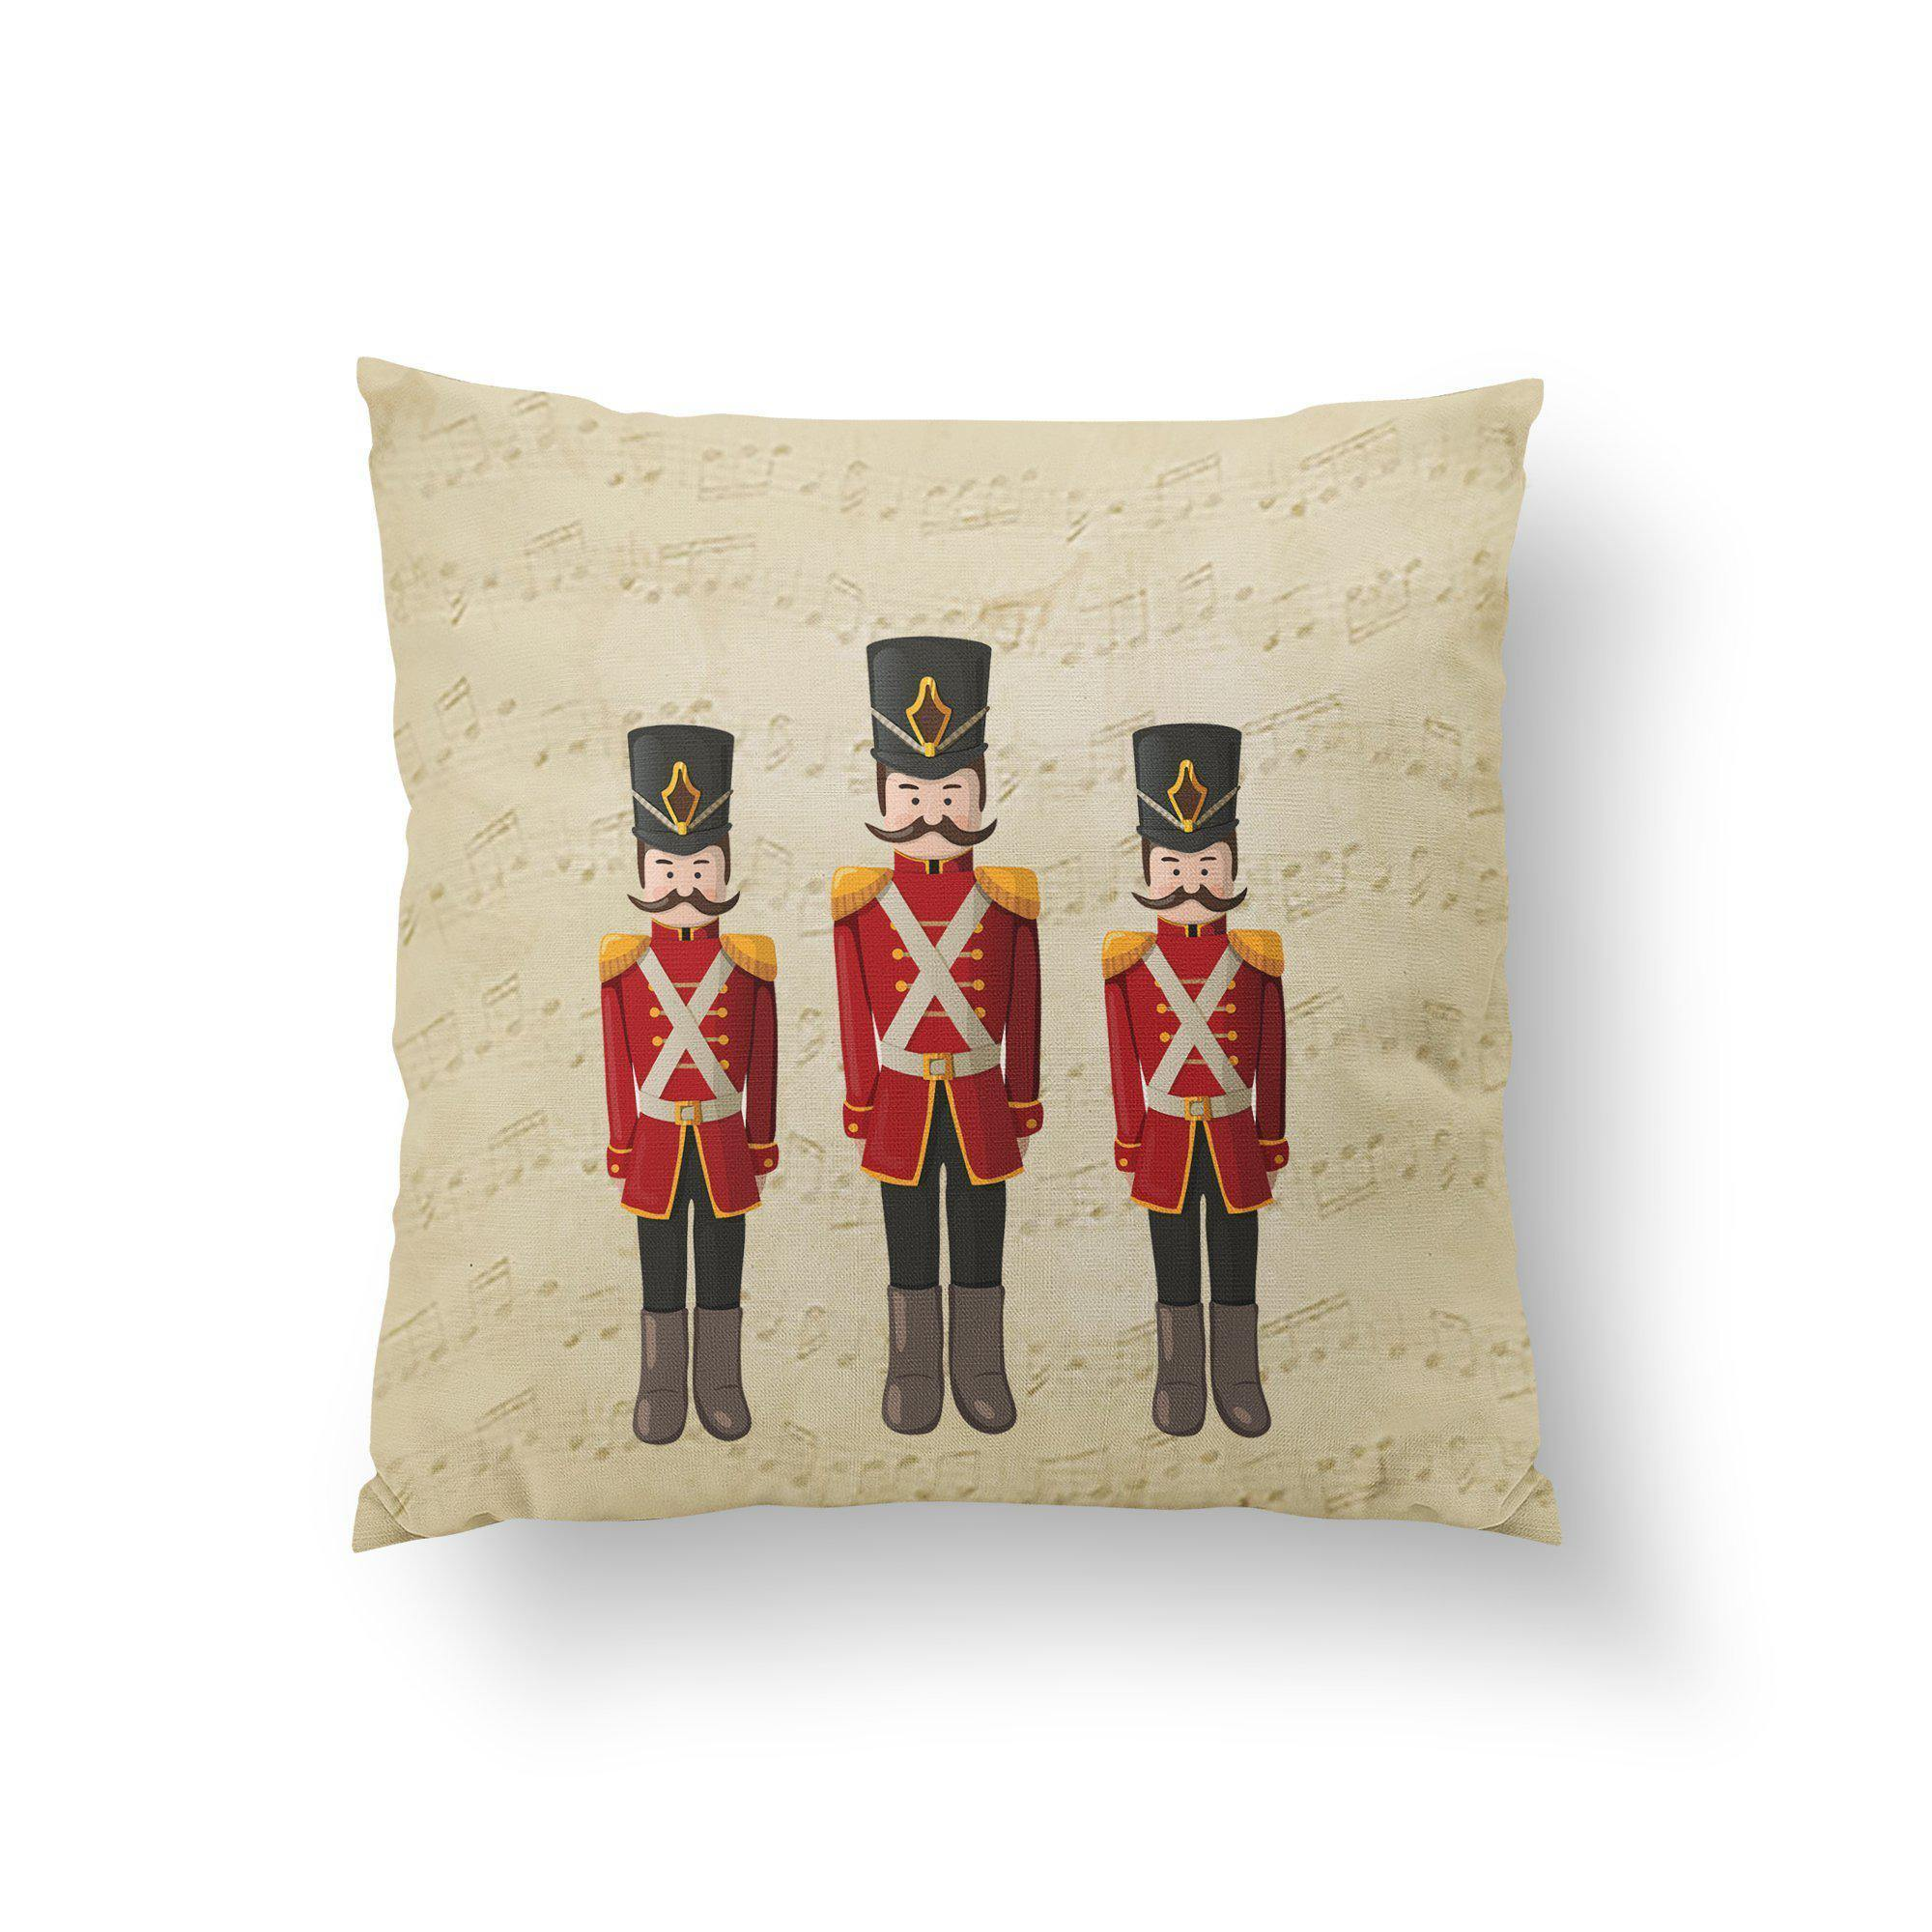 Toy Soldier Christmas Throw Pillow - Pillow Covers - W.FRANCIS